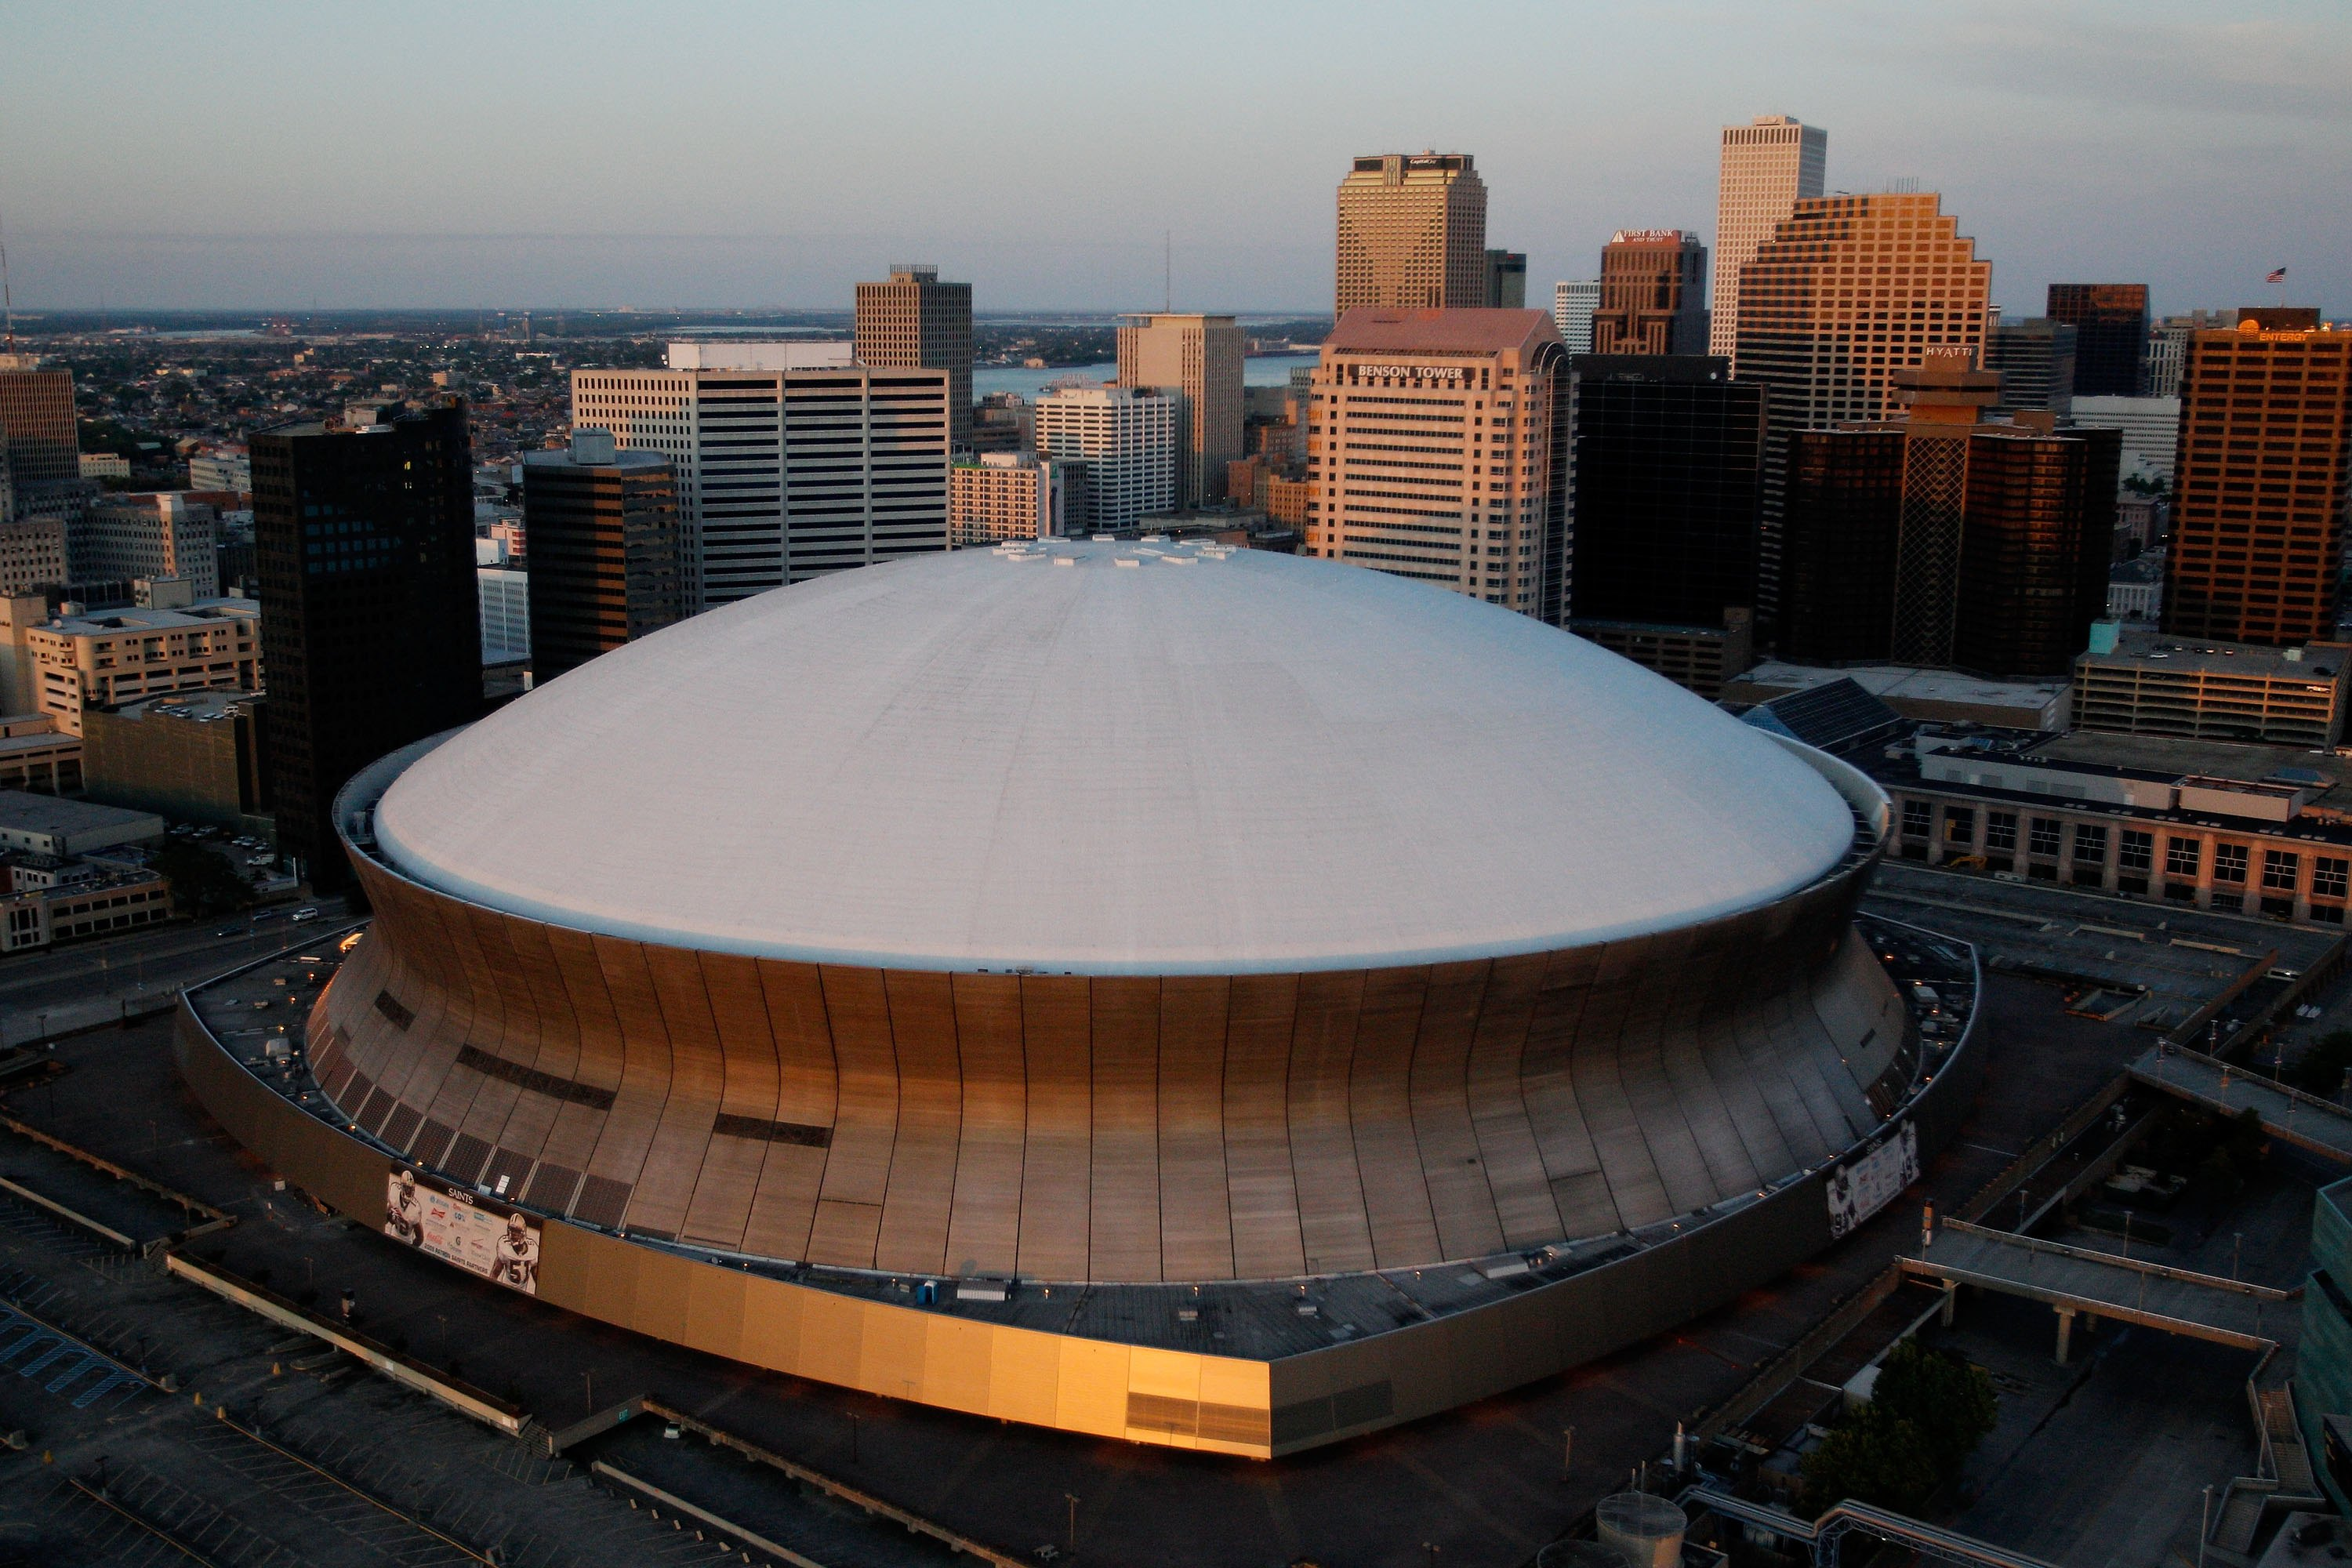 The Superdome has been home to the Super Bowl six times, more than any other stadium. In 2005 it infamously became shelter to thousands of locals displaced by Hurricane Katrina. The stadium has been the home of the New Orleans Saints since it first opened in 1975.